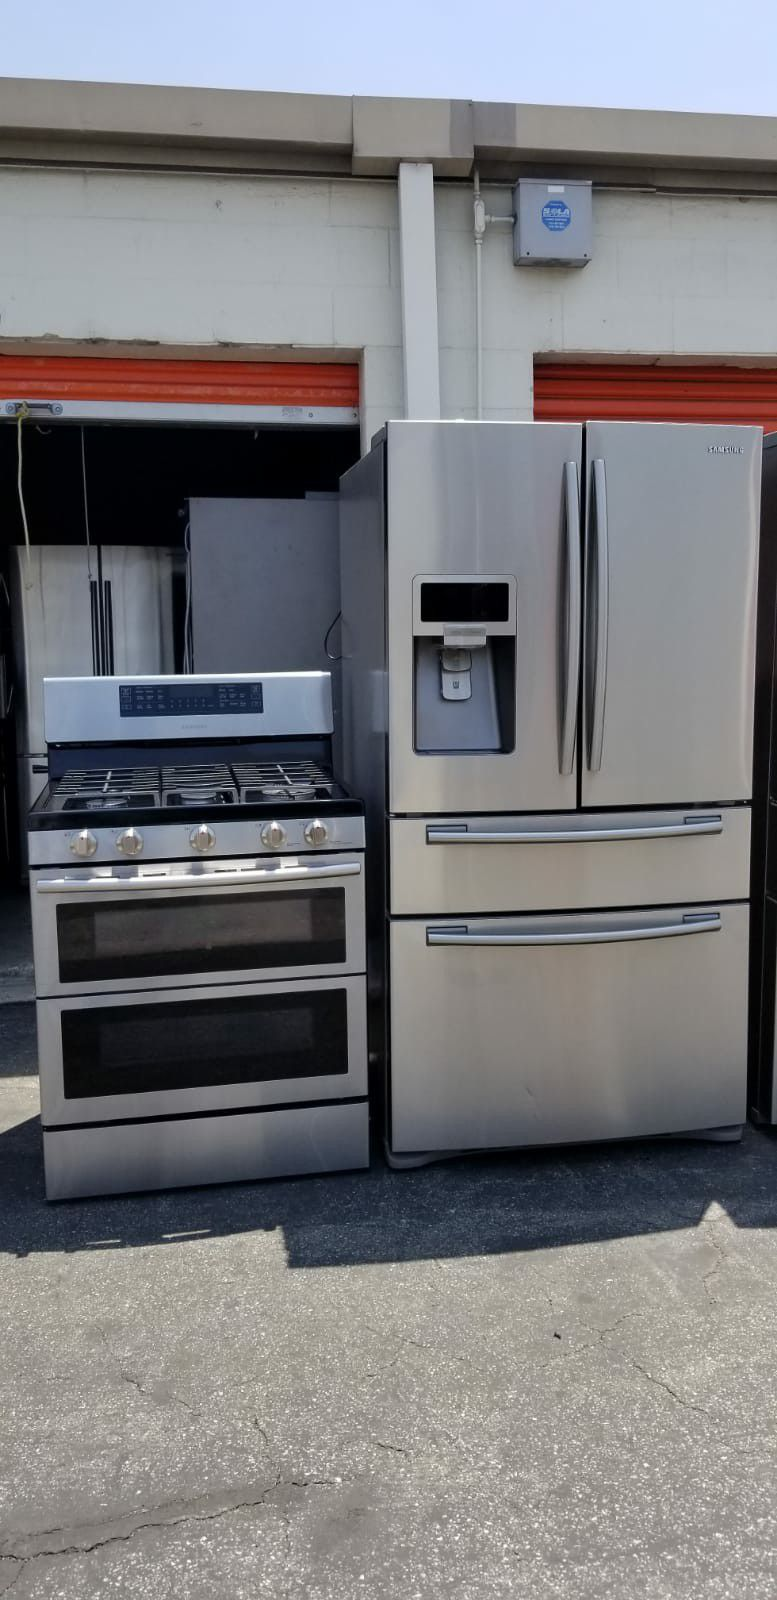 Refrigerator and stove combo